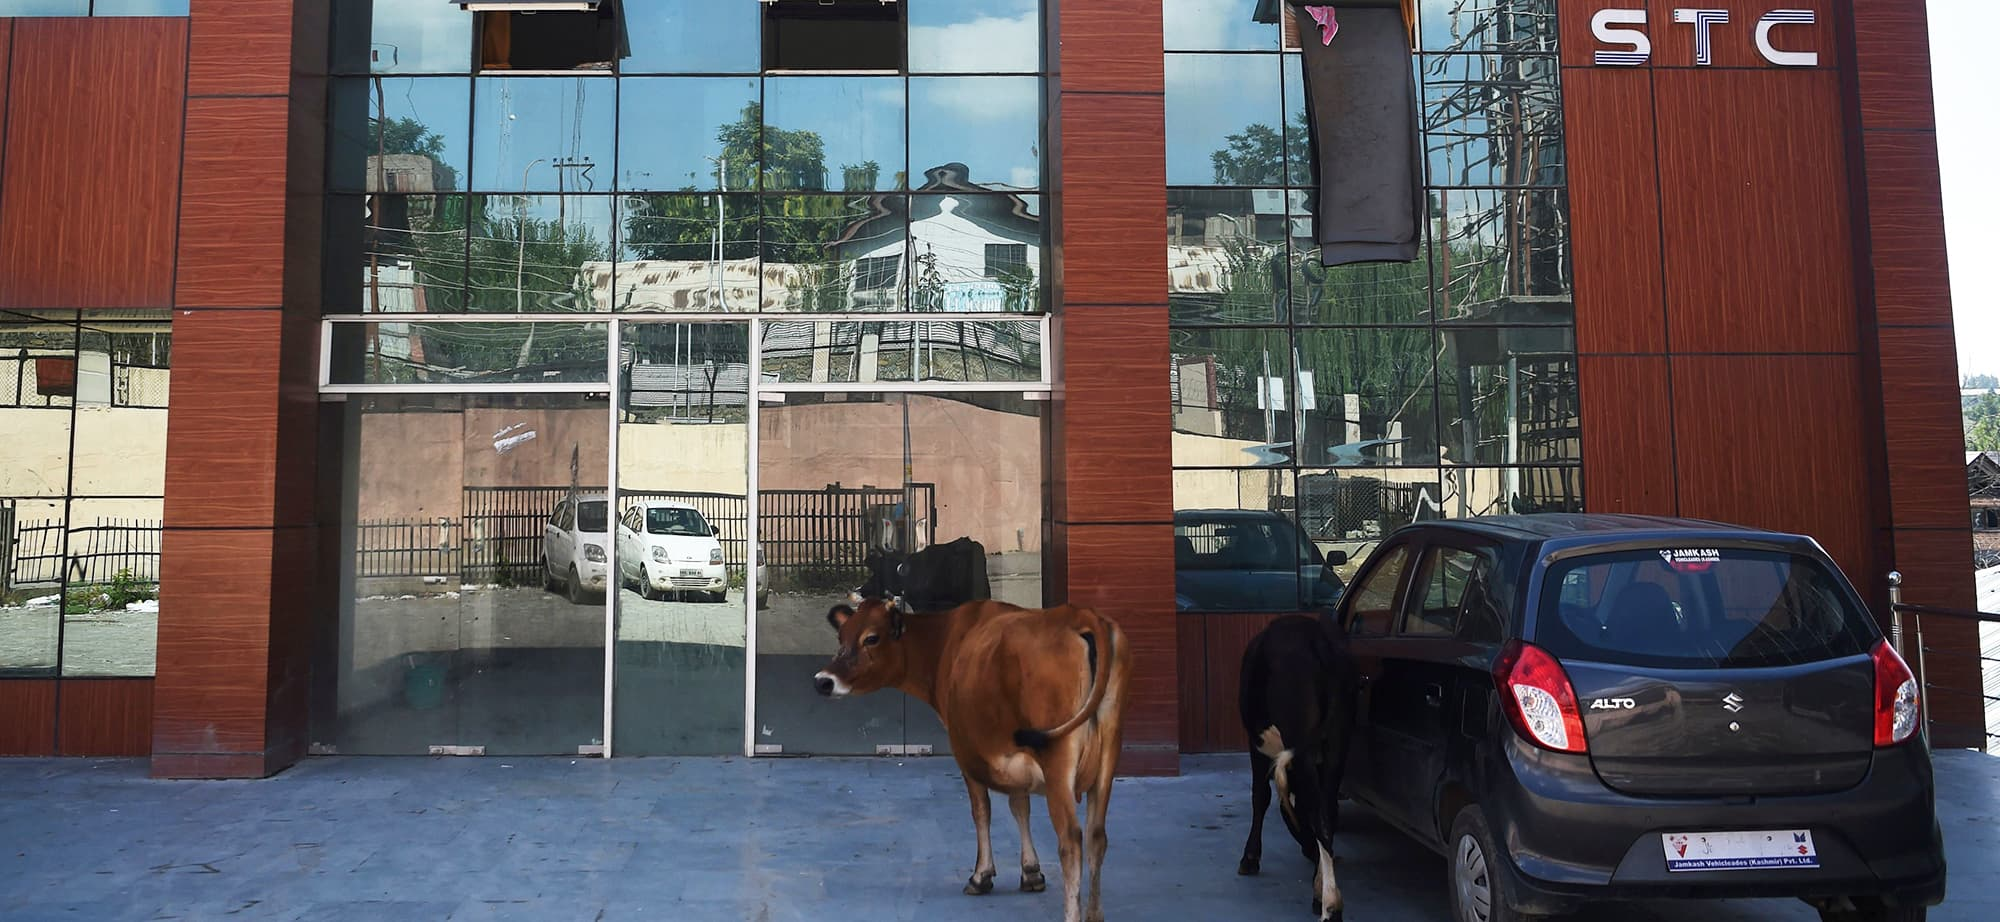 (FILES) In this file photo taken on August 18, 2019 cattle roam outside a closed building with offices of the internet provider STC and other software companies in the Rangreth industrial estate in Srinagar. - The coffee machines have been cold, computer screens blank and work stations empty for two months in Kashmir's Silicon Valley as an Indian communications blockade on the troubled region takes a growing toll on business. (Photo by Punit PARANJPE / AFP) — AFP or licensors